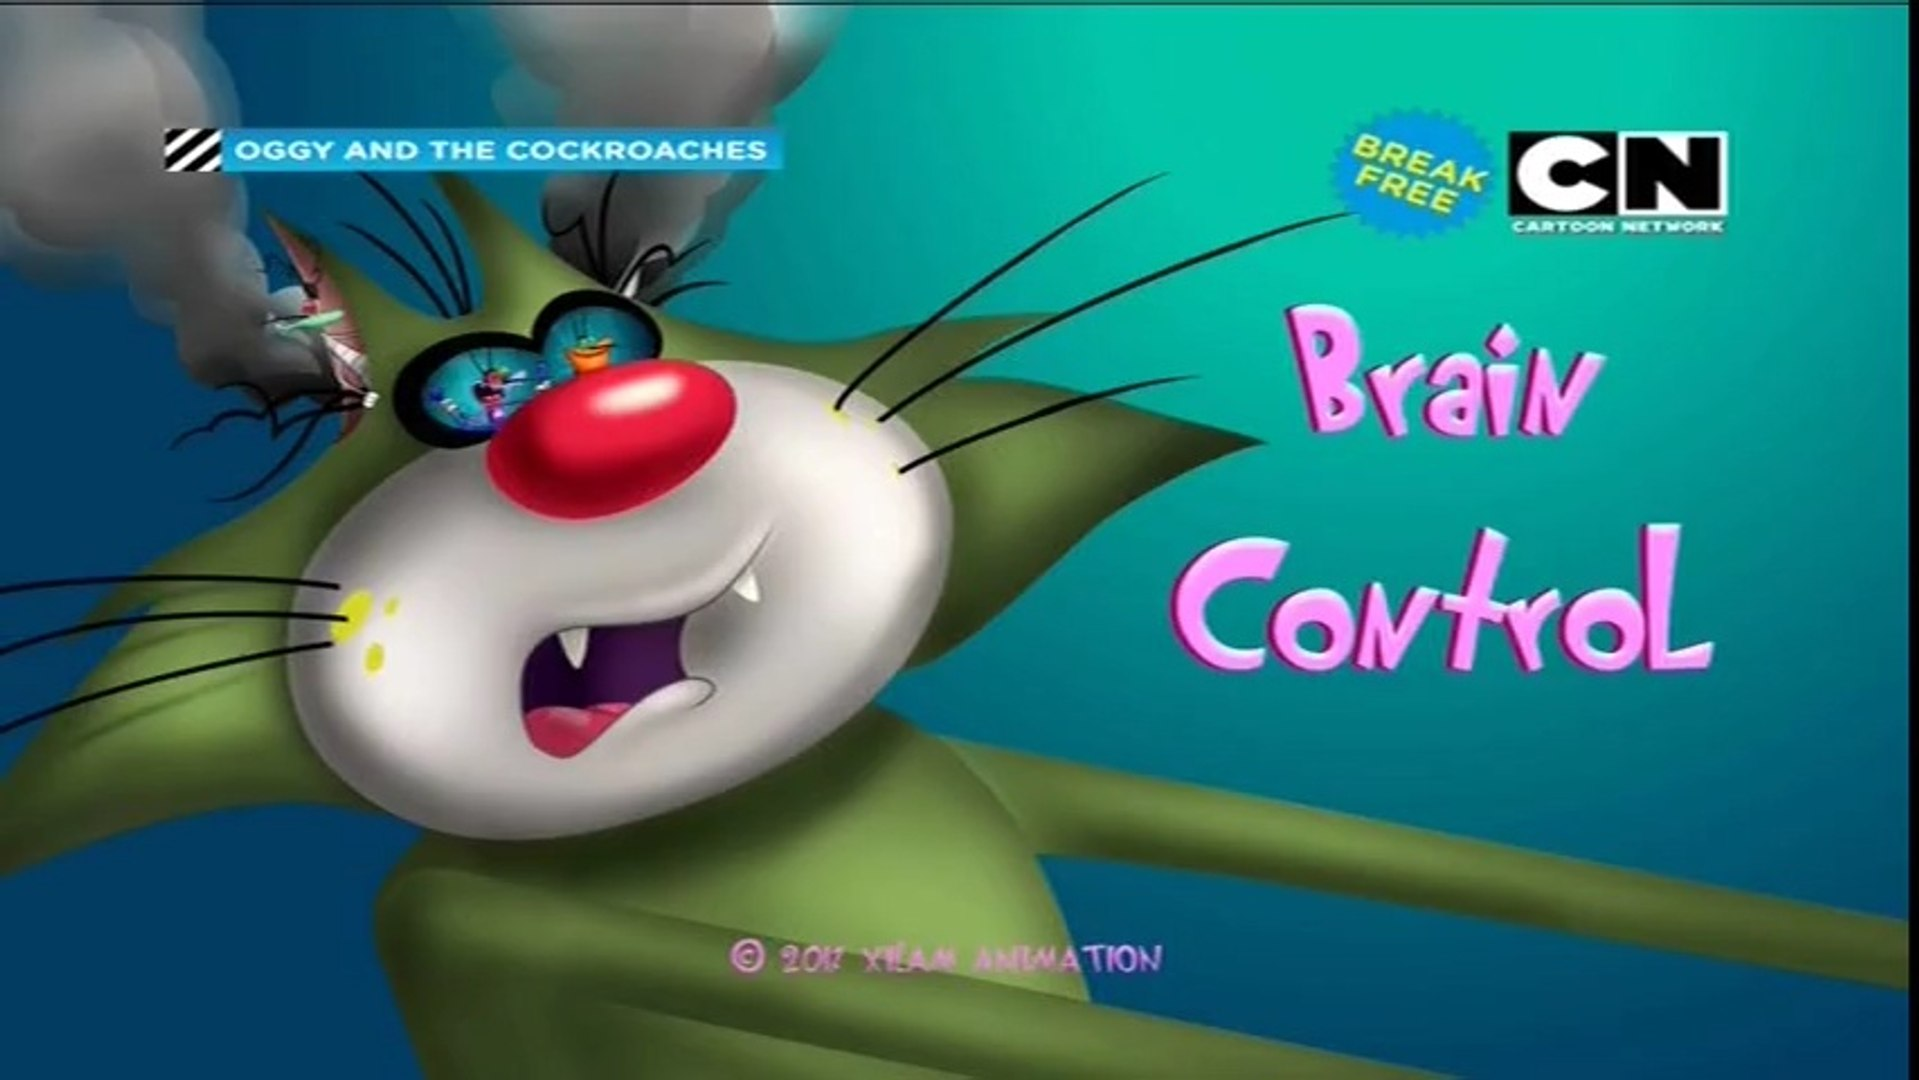 Brain Control Oggy And The Cockroaches In Hindi Animated Cartoon For Kids As Seen On Cartoon Network